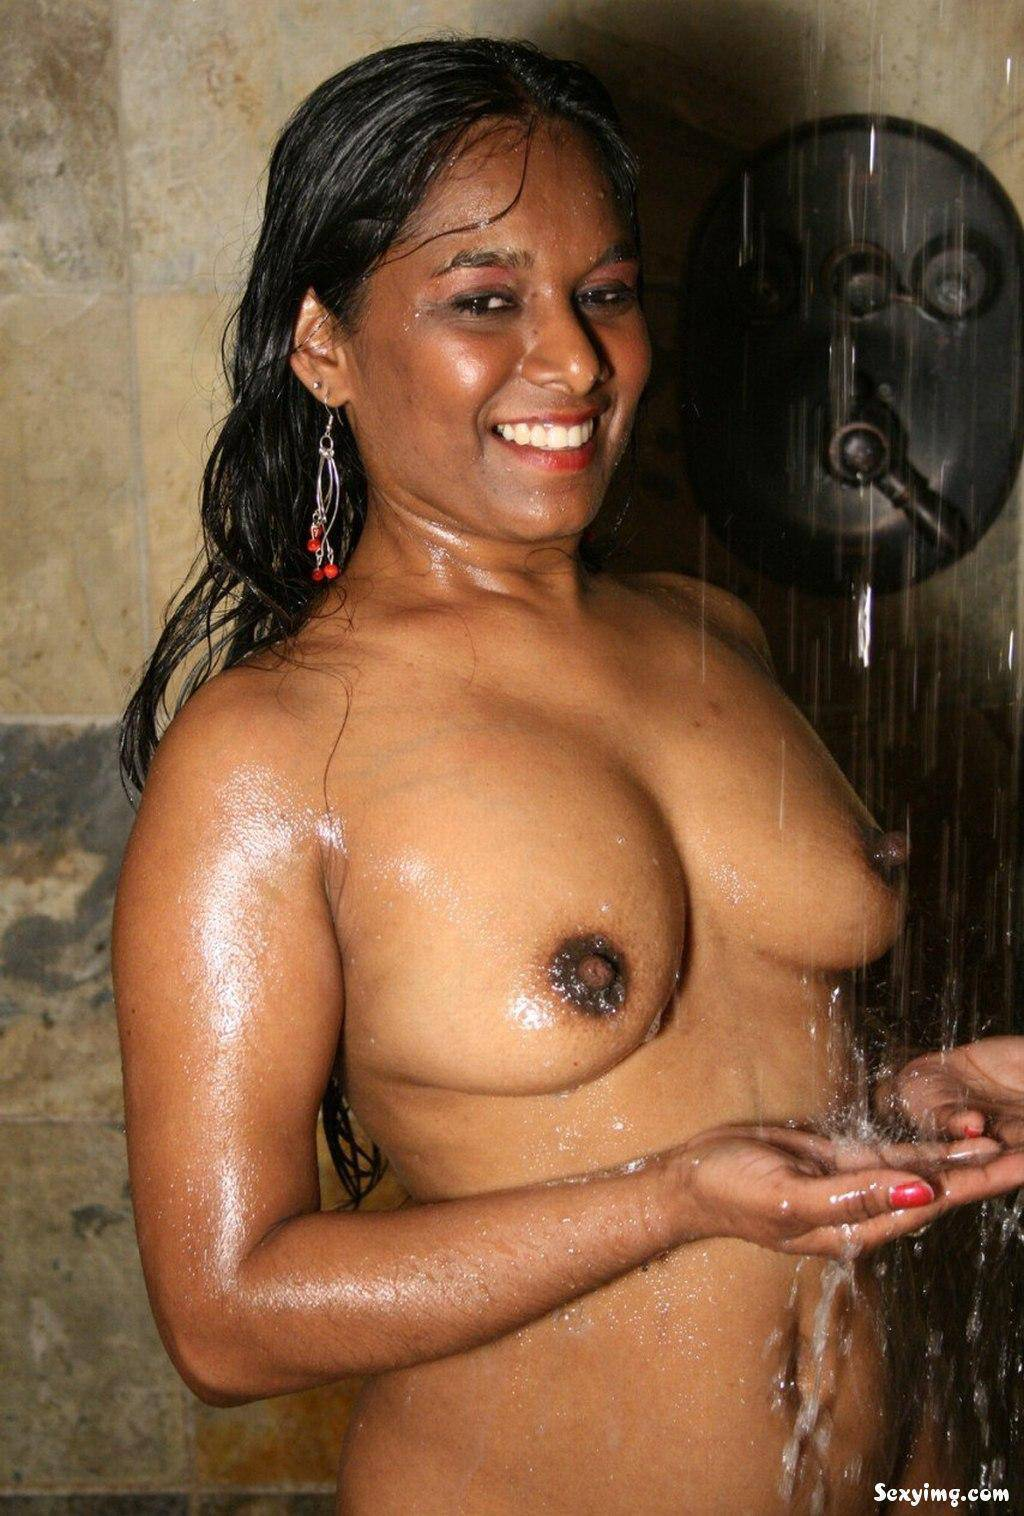 Indian Shemale Pictures Amazing 24 best indian shemales and hijras images on pinterest | indian